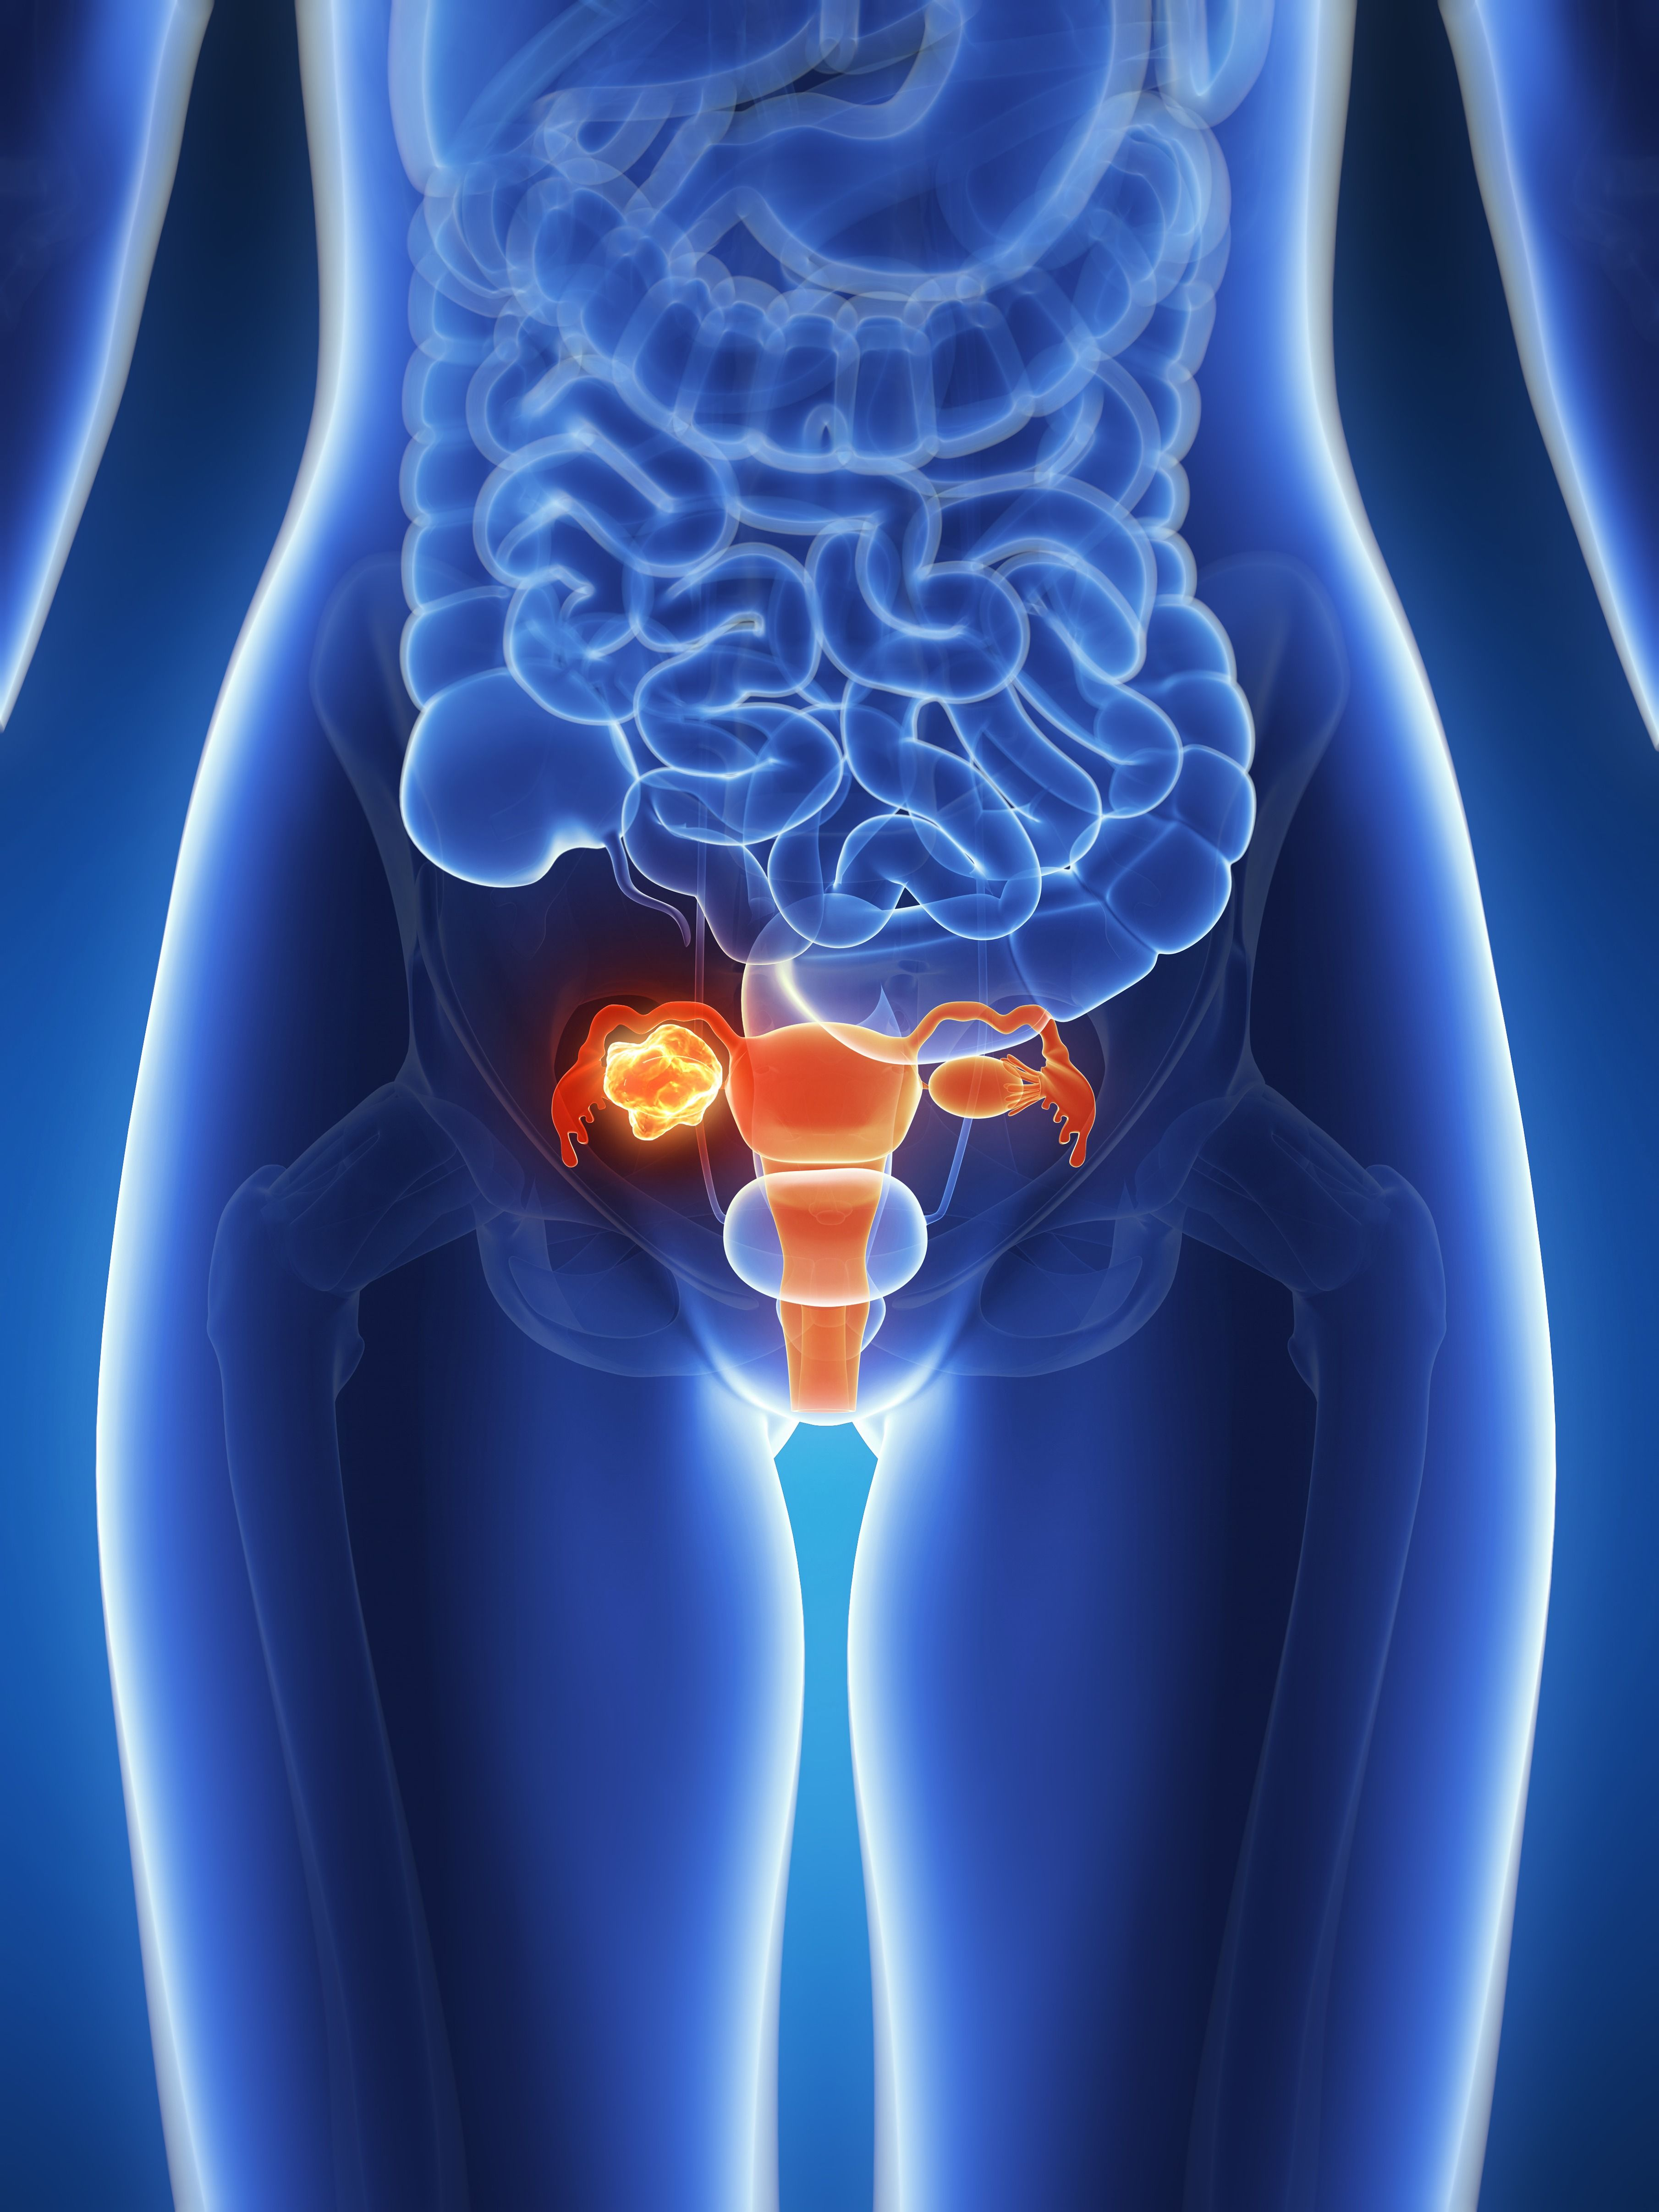 Here's Why Ovarian Cancer Is So Hard to Diagnose, According to a Doctor